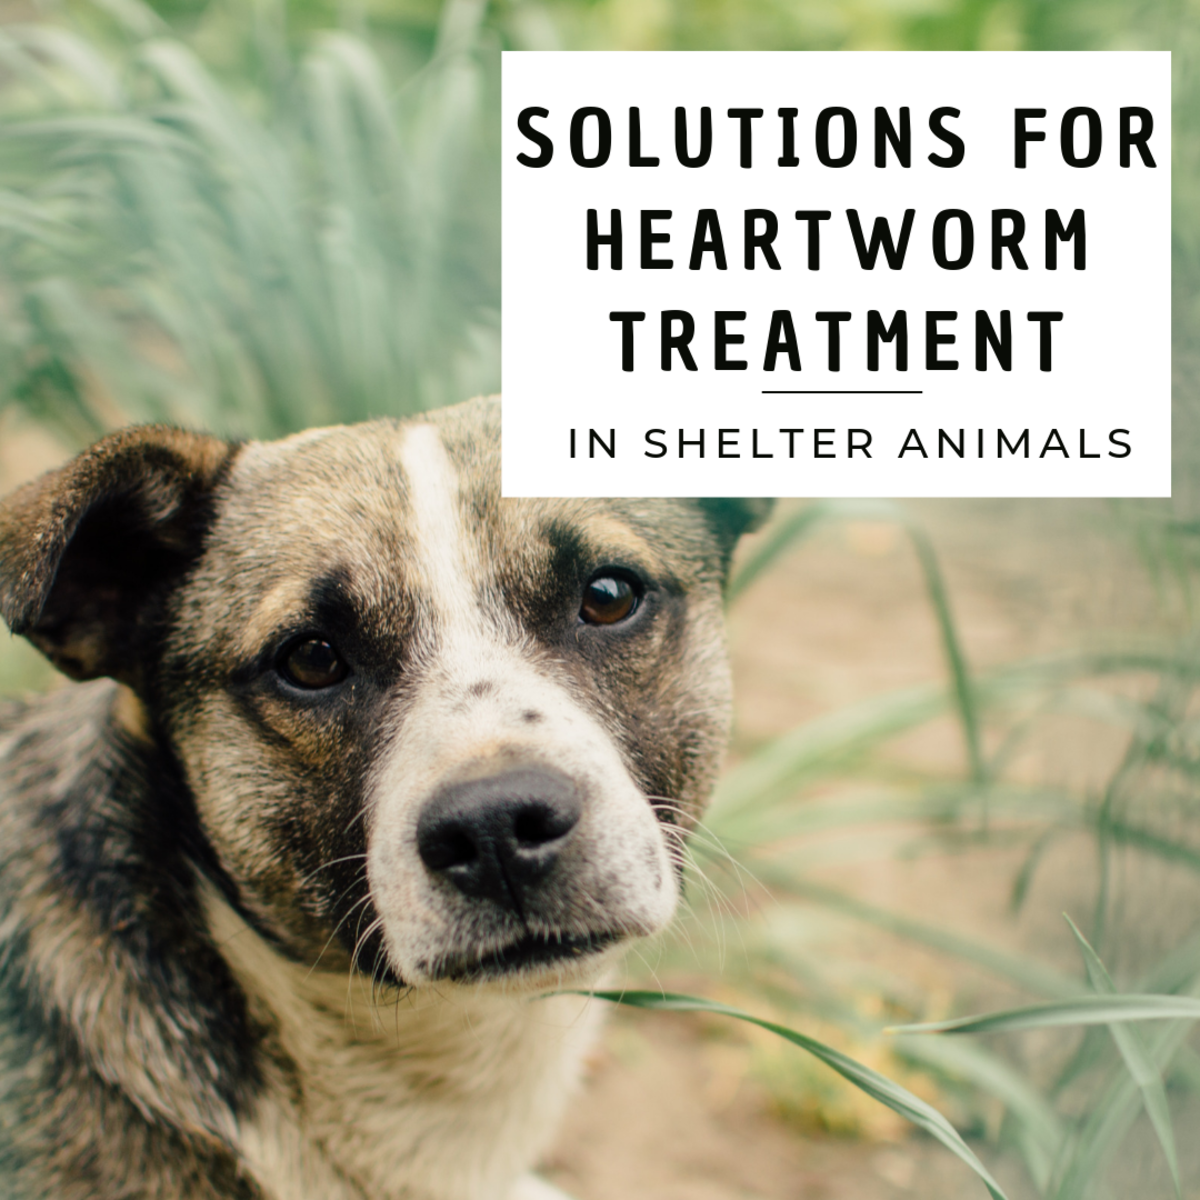 Heartworm Treatment in Shelter Animals